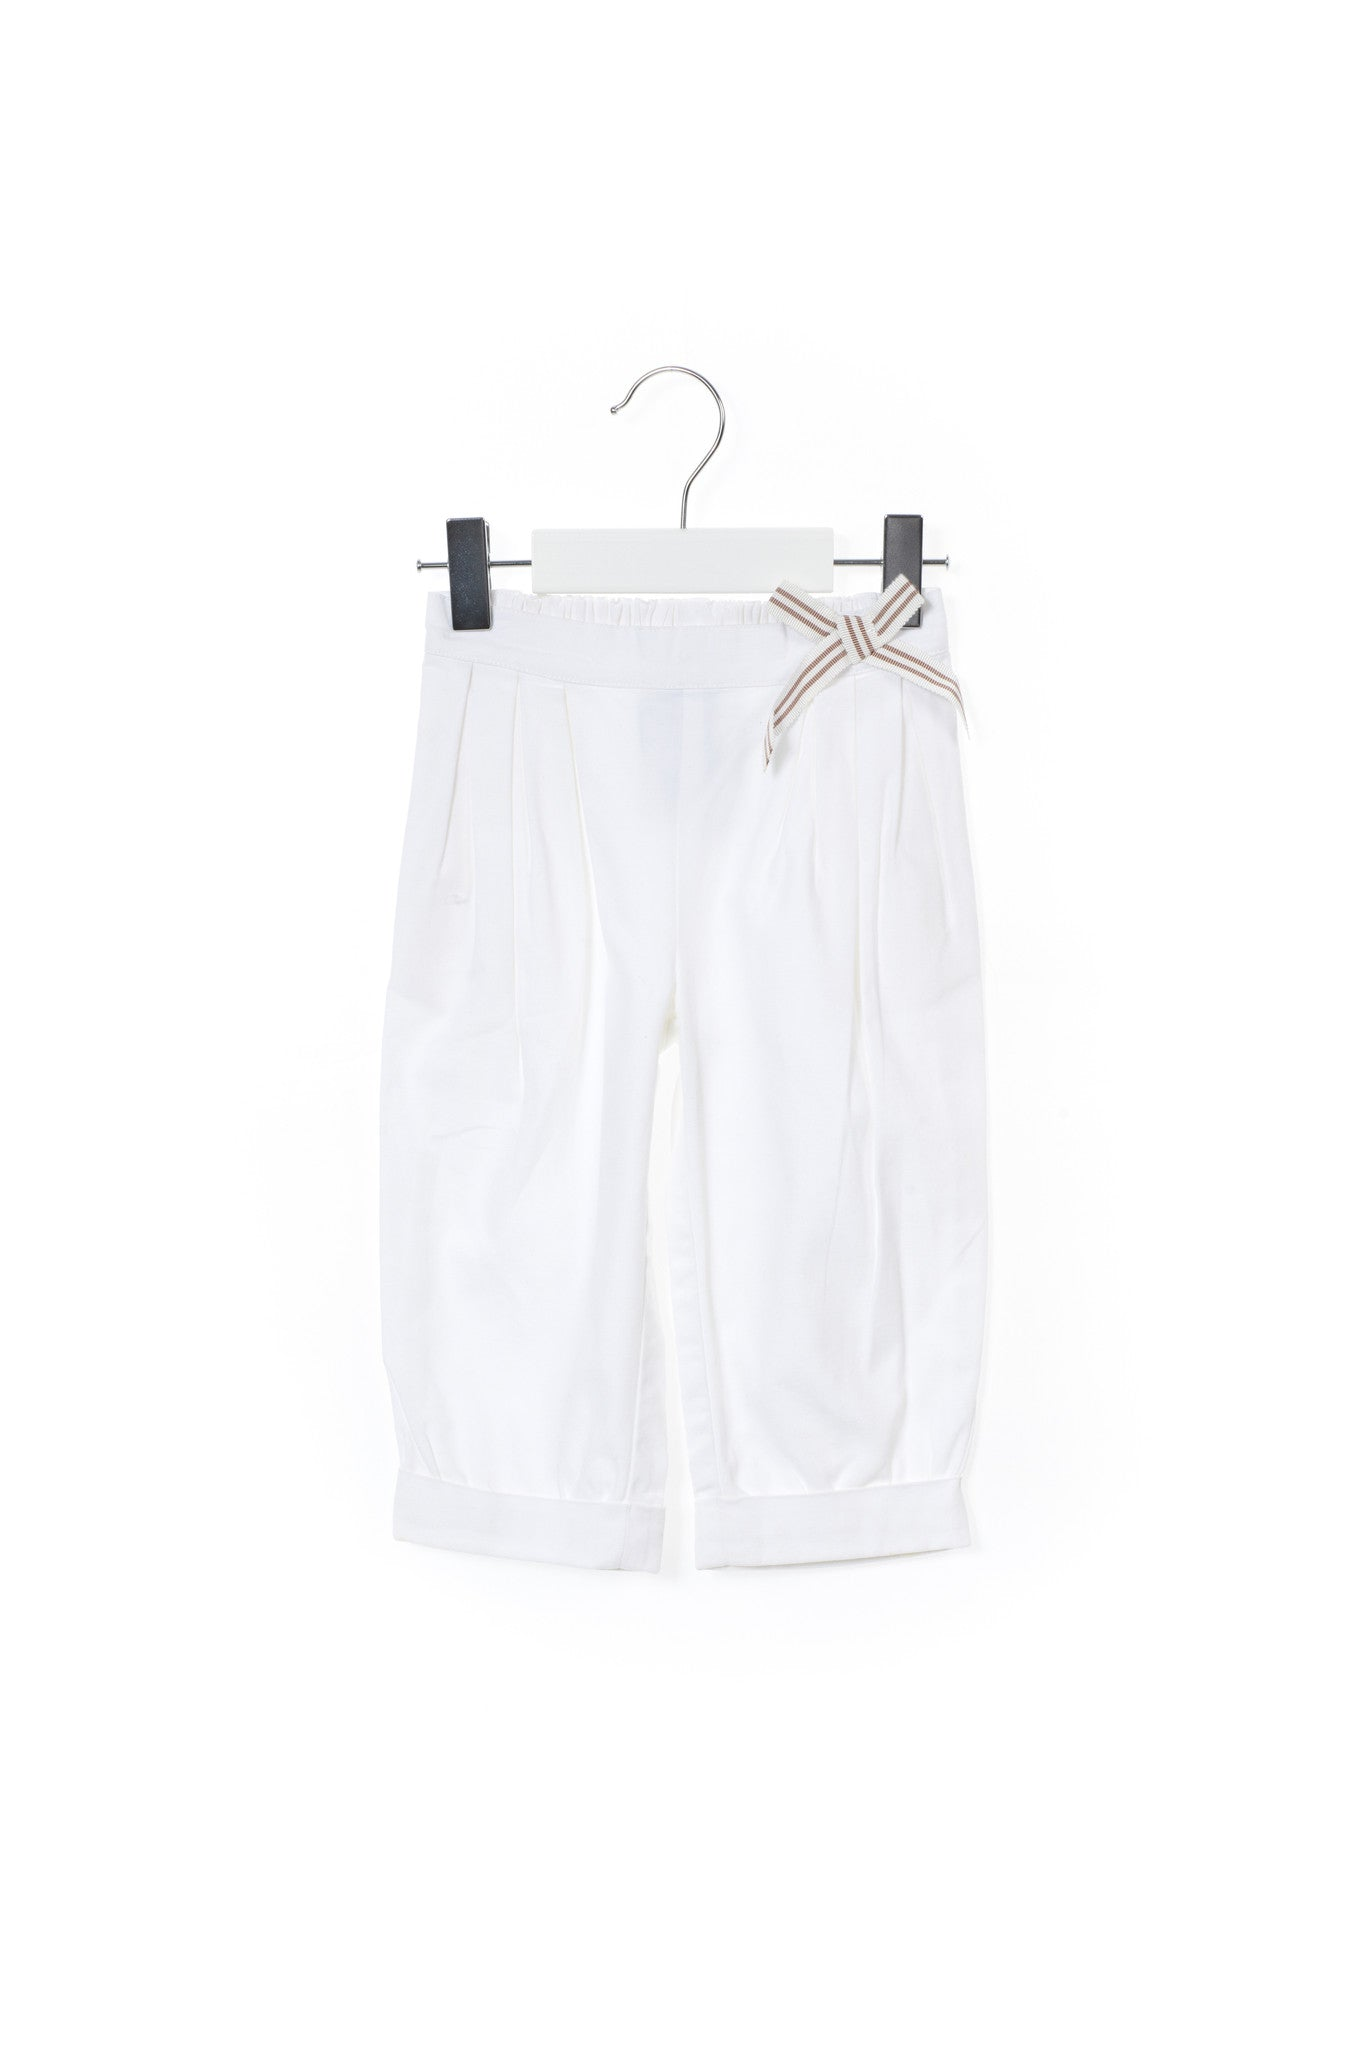 Pants 12-18M, Jacadi at Retykle - Online Baby & Kids Clothing Up to 90% Off